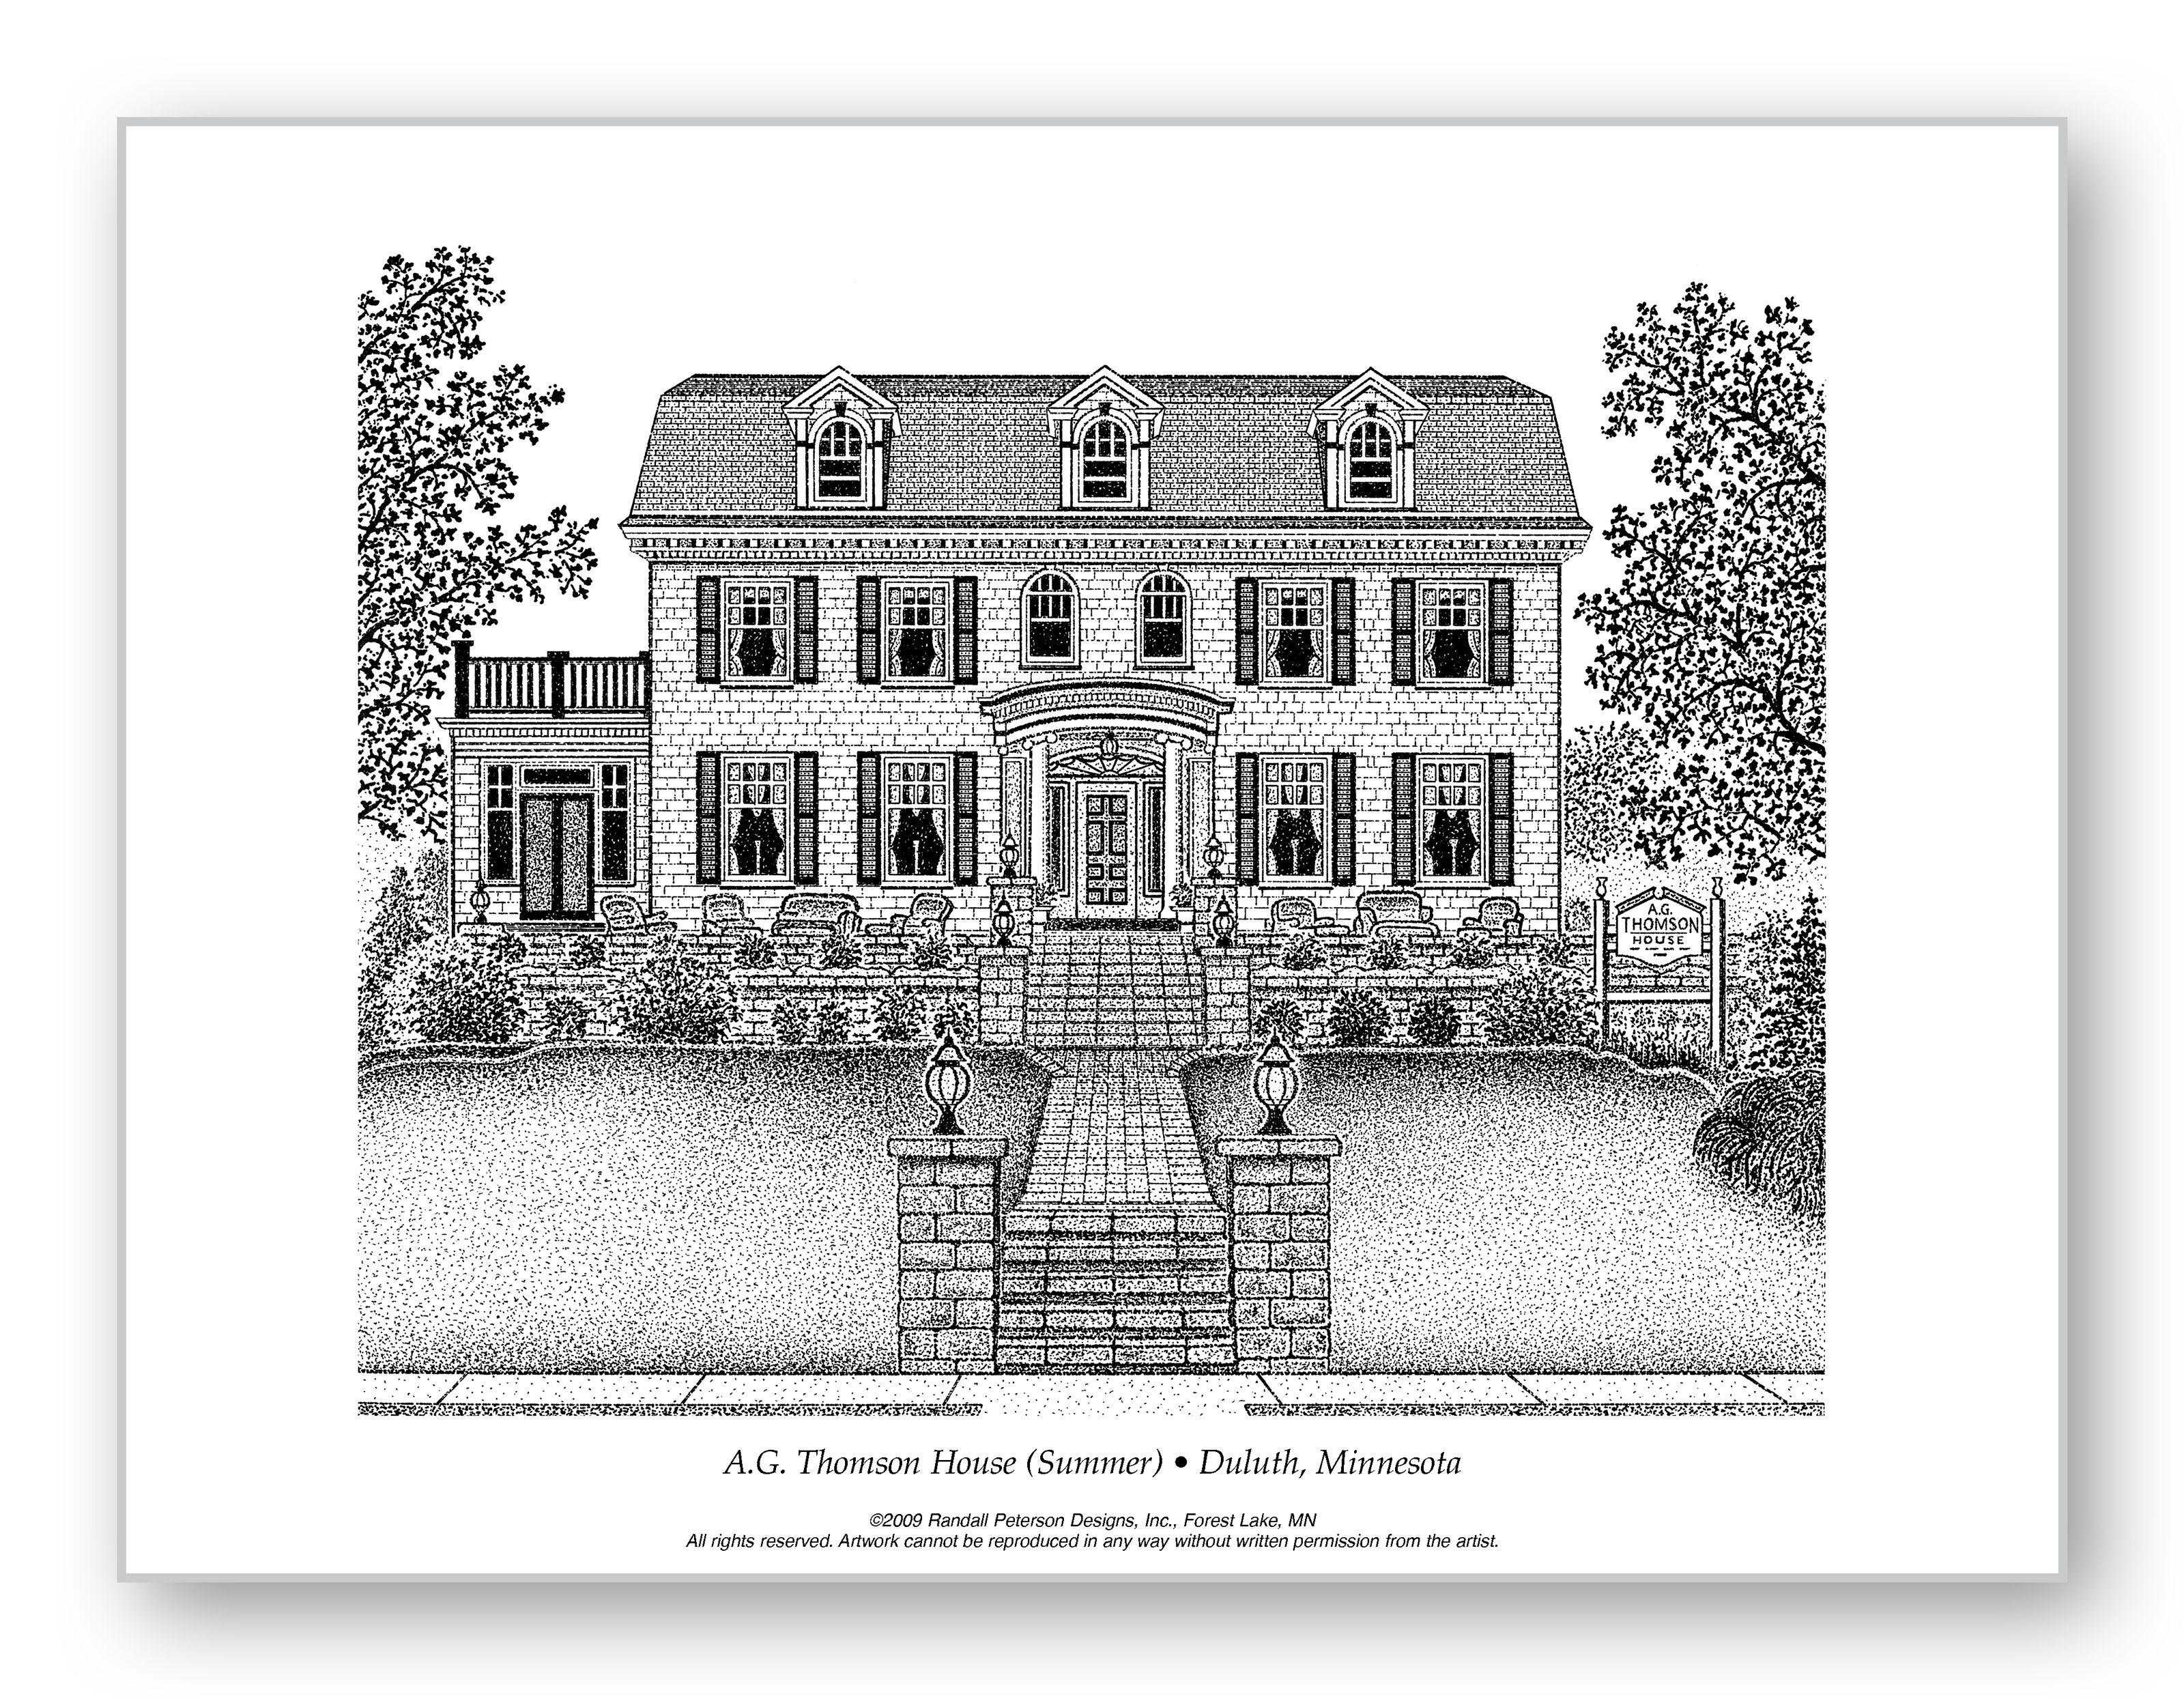 A.G. Thomson House (Summer). An historic bed and breakfast